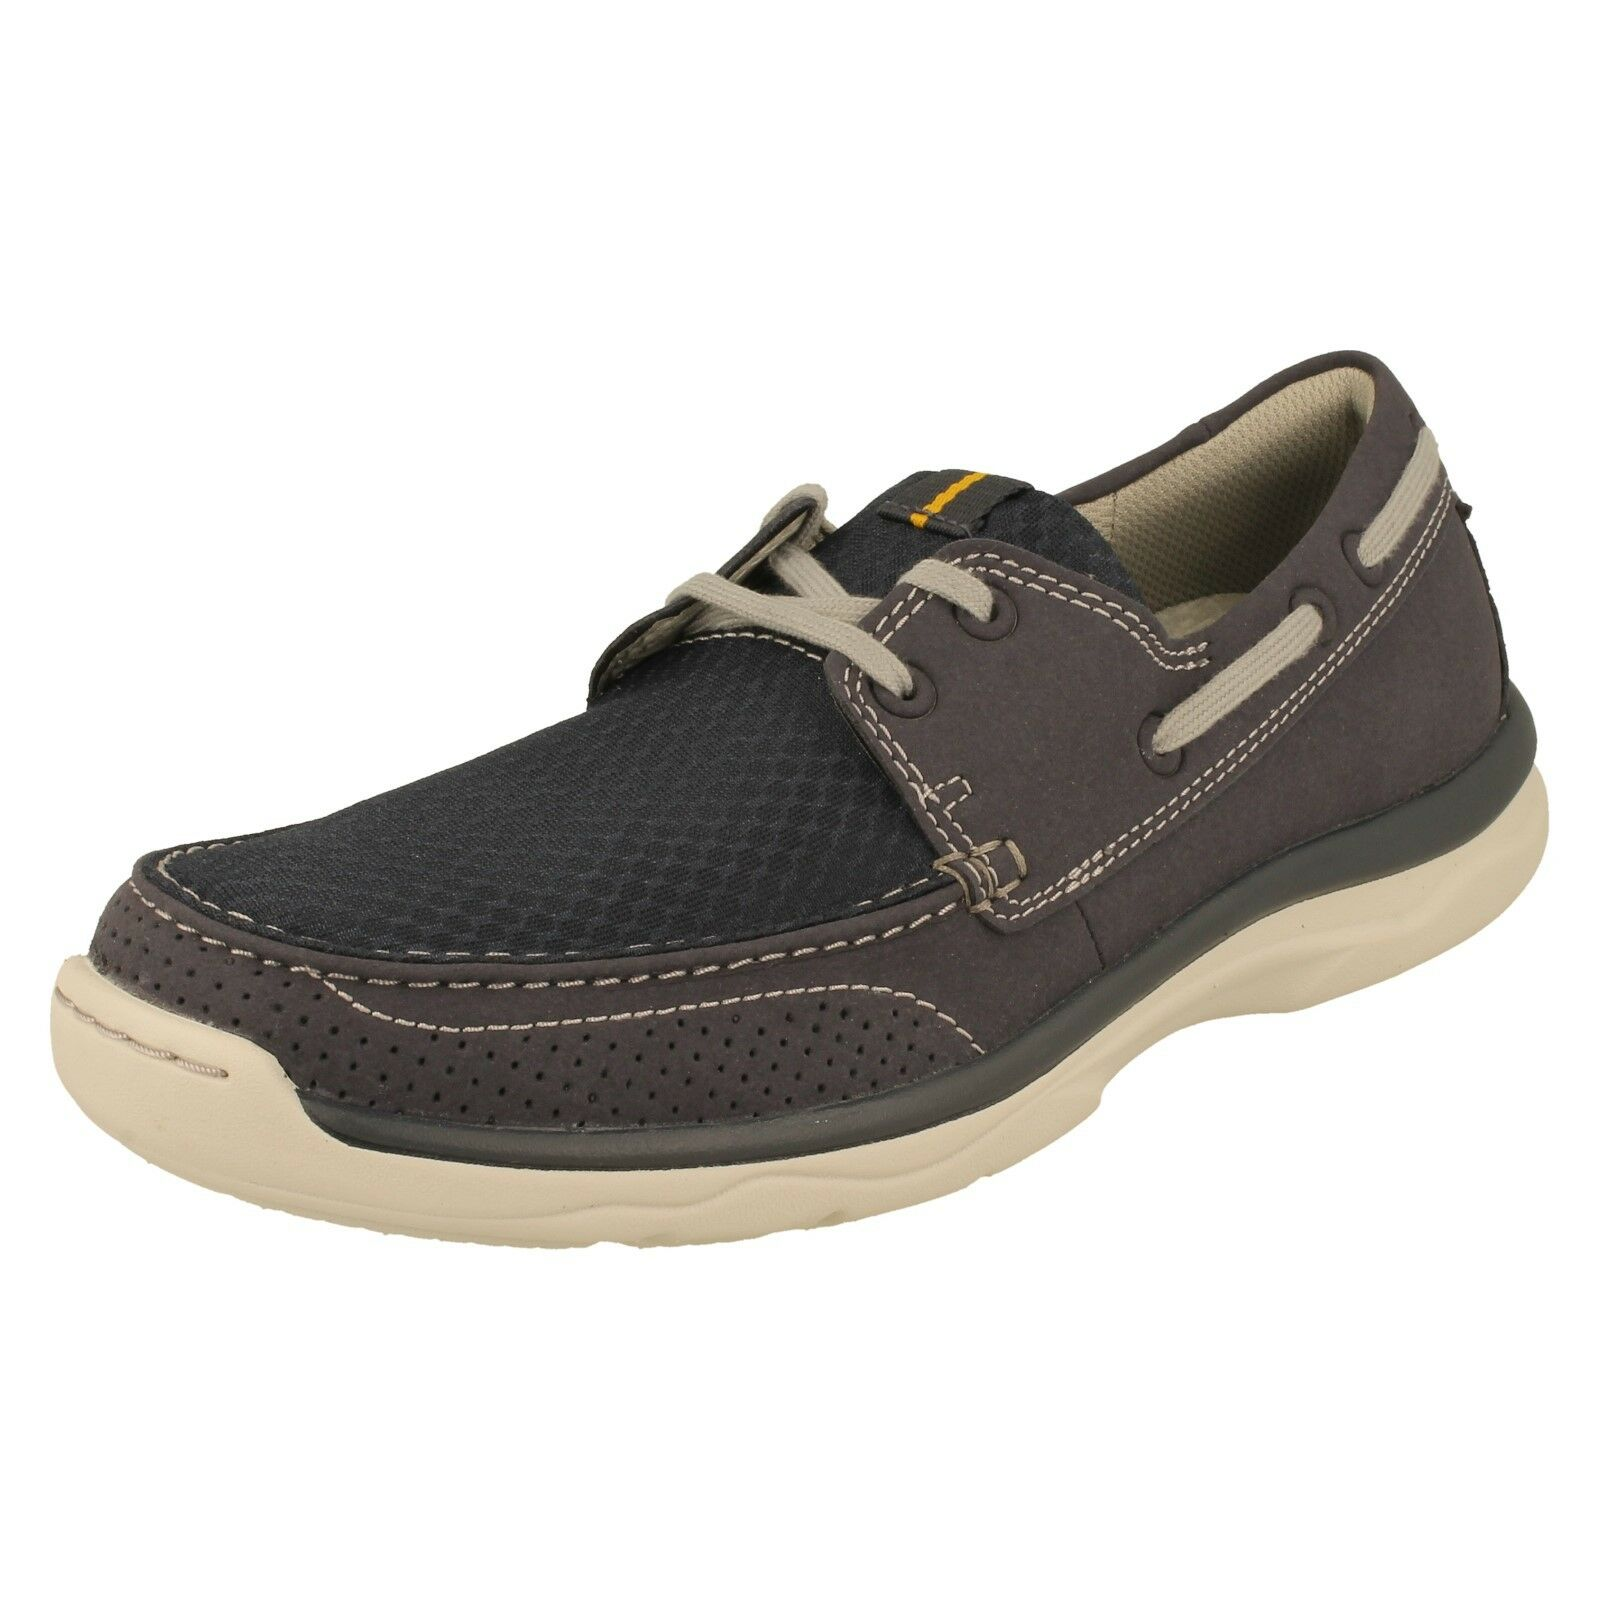 Men's Clarks Casual Lace Up Shoes - Marcus Edge